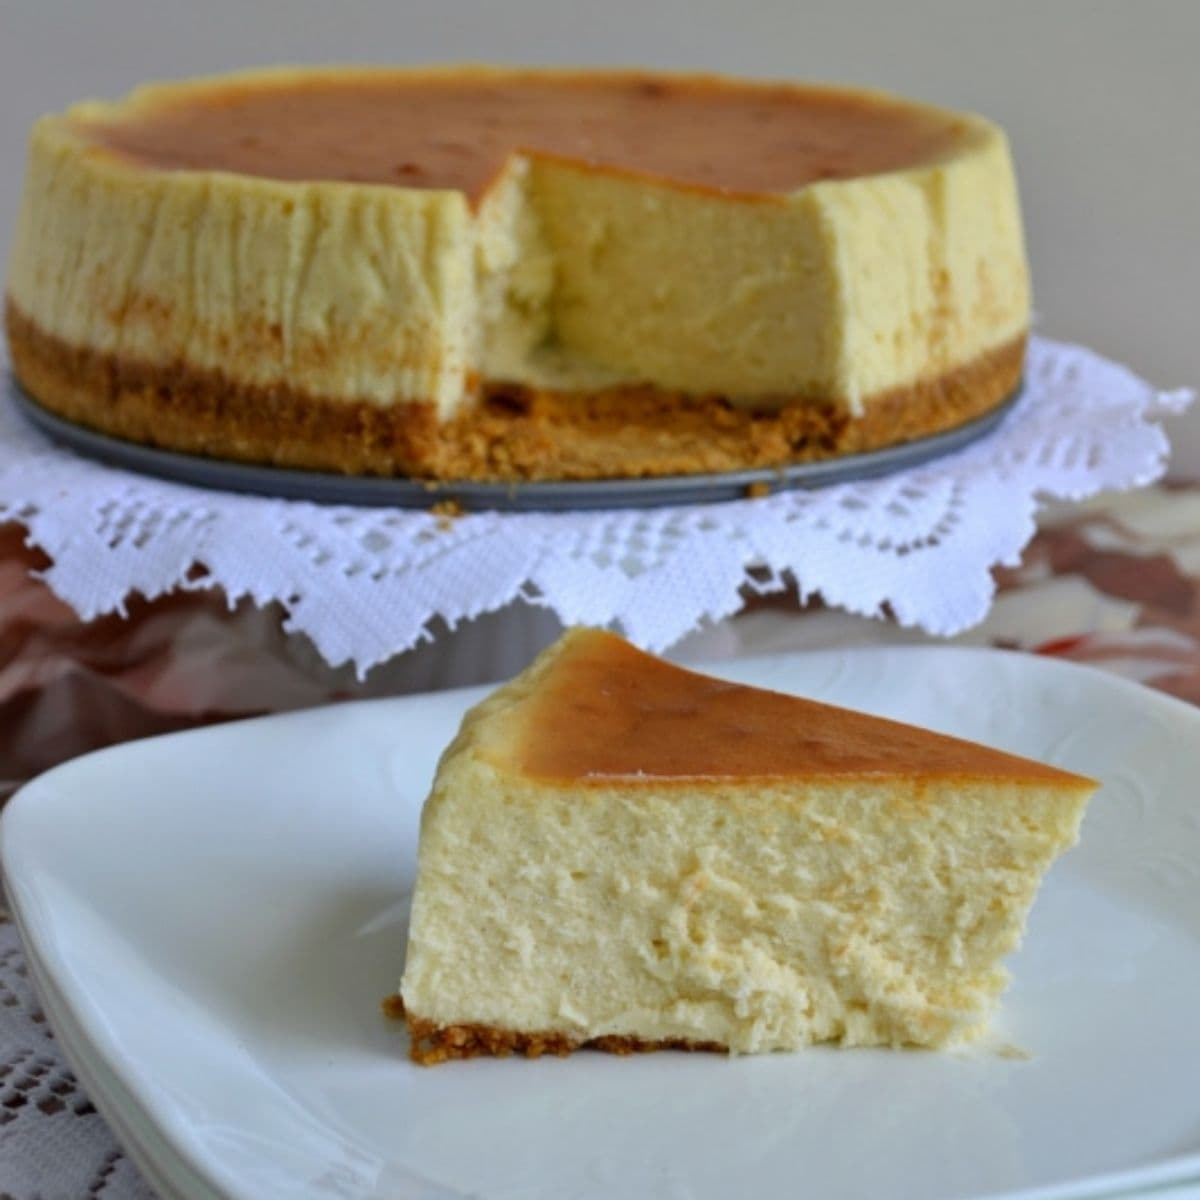 A slice of Vanilla Bean Cheesecake on a plate with the cheesecake in the background.